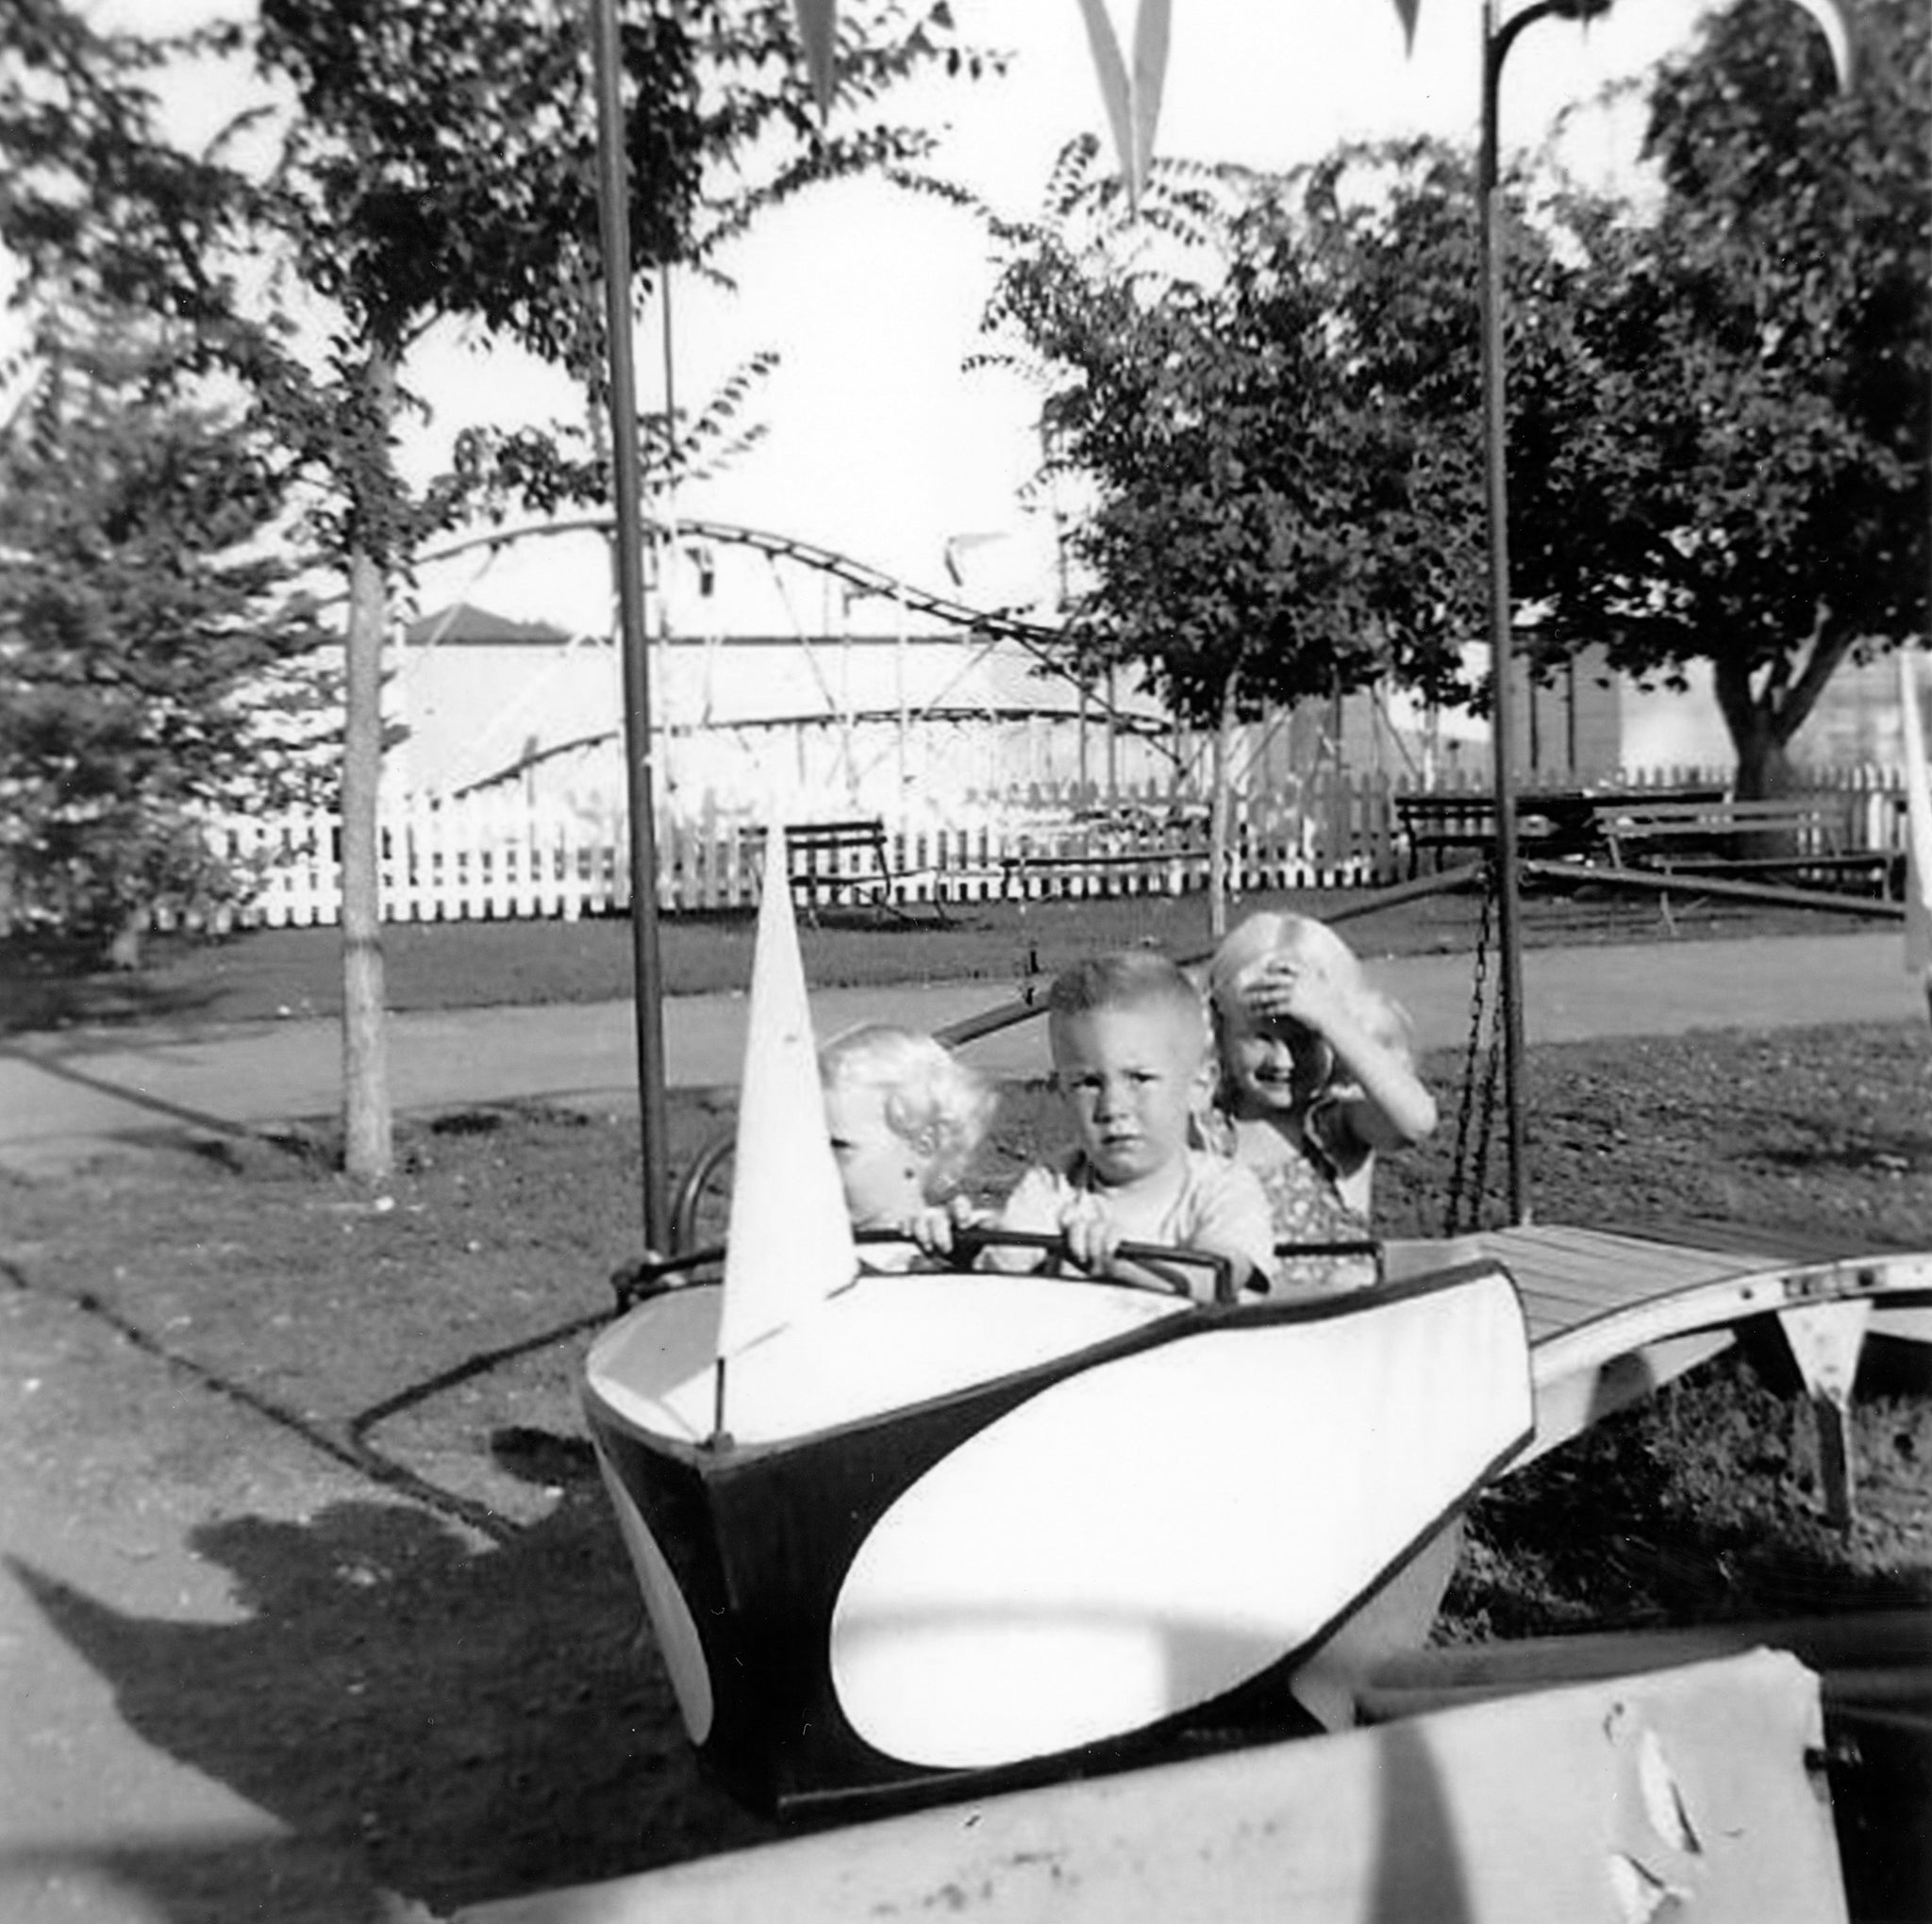 Arlene, Gary, and Joan Drake at the Wonderland amusement park, circa 1956. -- Arlene Drake Hegel